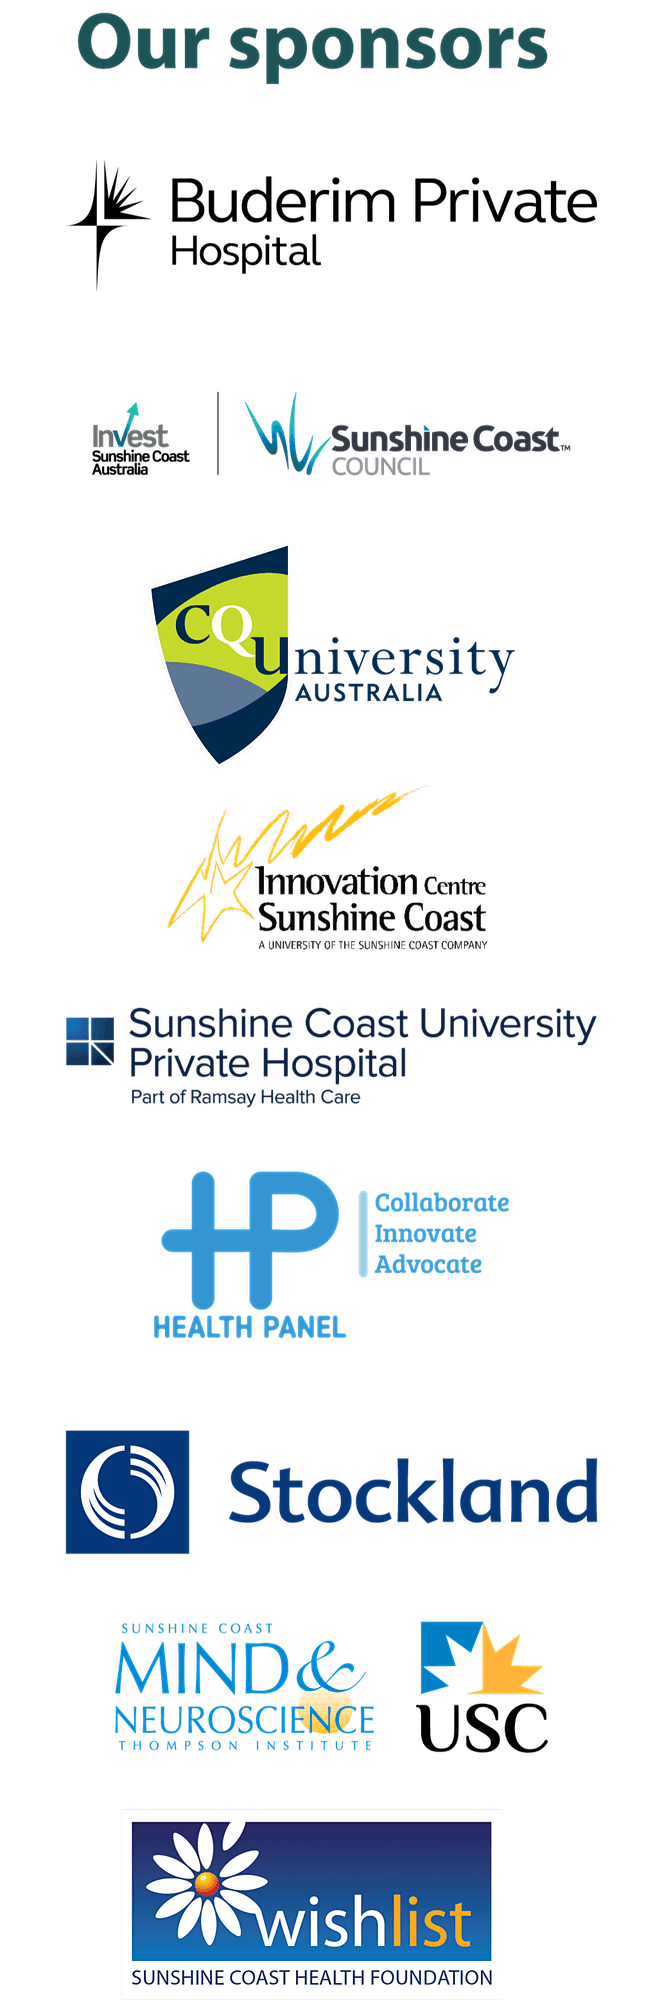 Sunshine Coast Health Symposium image